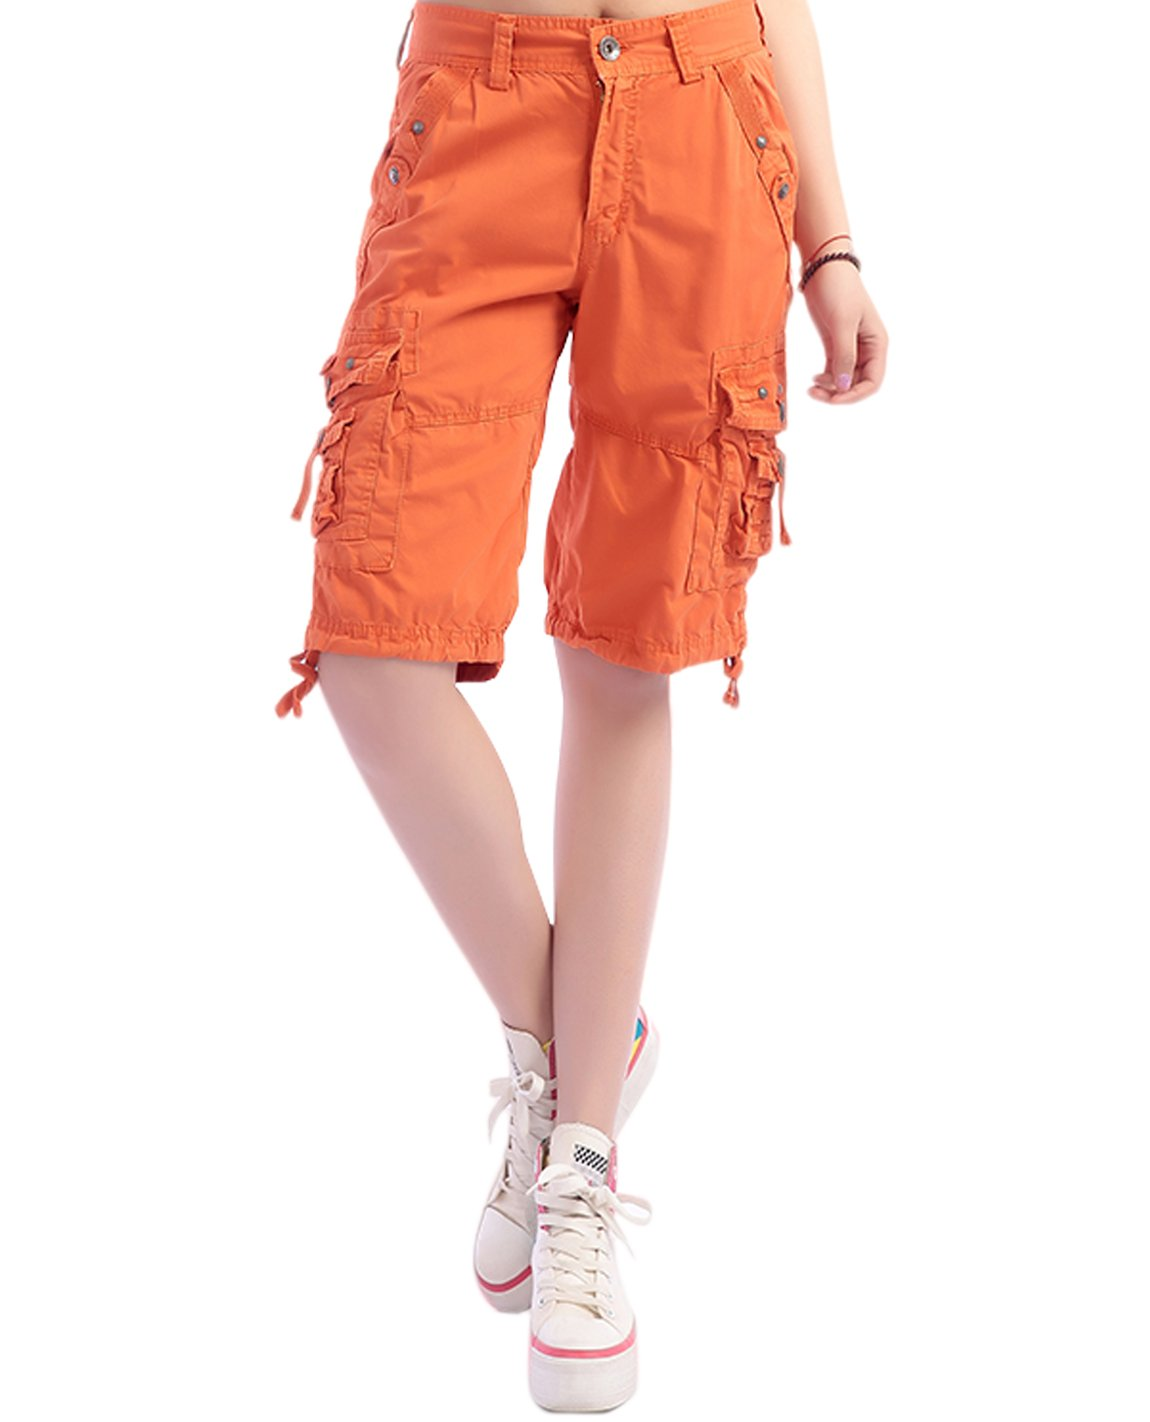 HOW'ON Women's Casual Loose Fit Twill Bermuda Cargo Shorts Multi Pocket Straight Shorts Lily Orange L